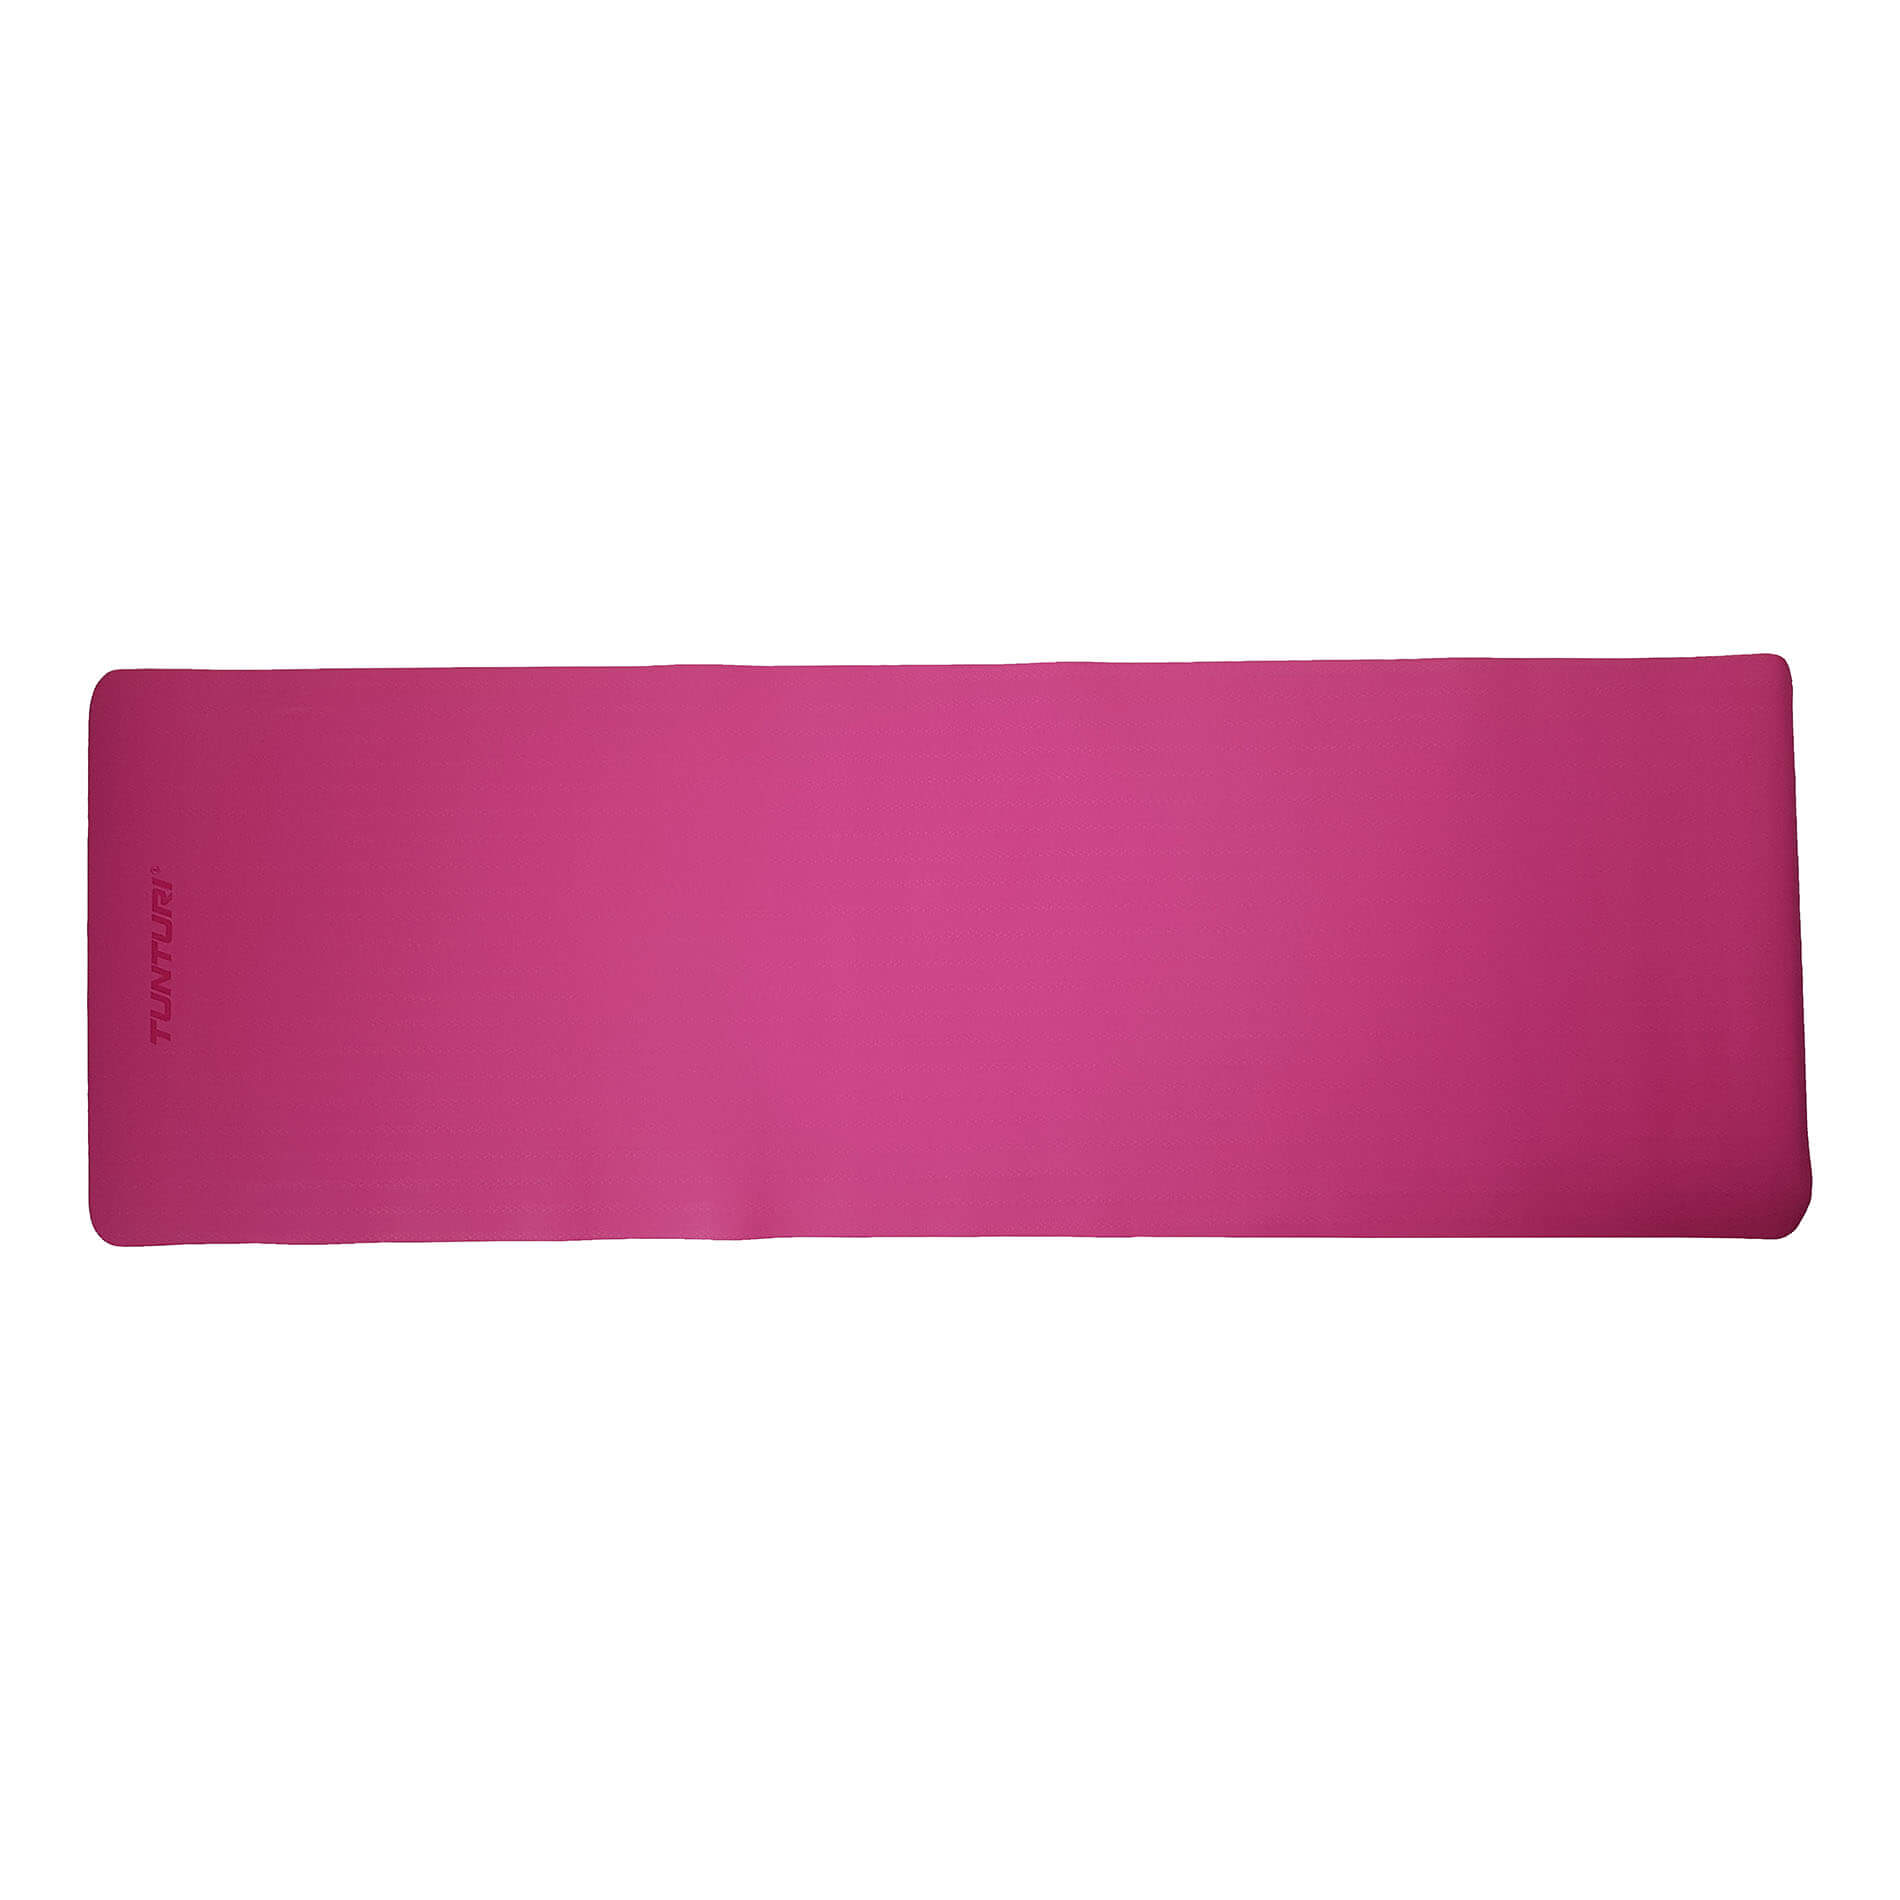 TPE Yogamat 4mm - Black/Pink